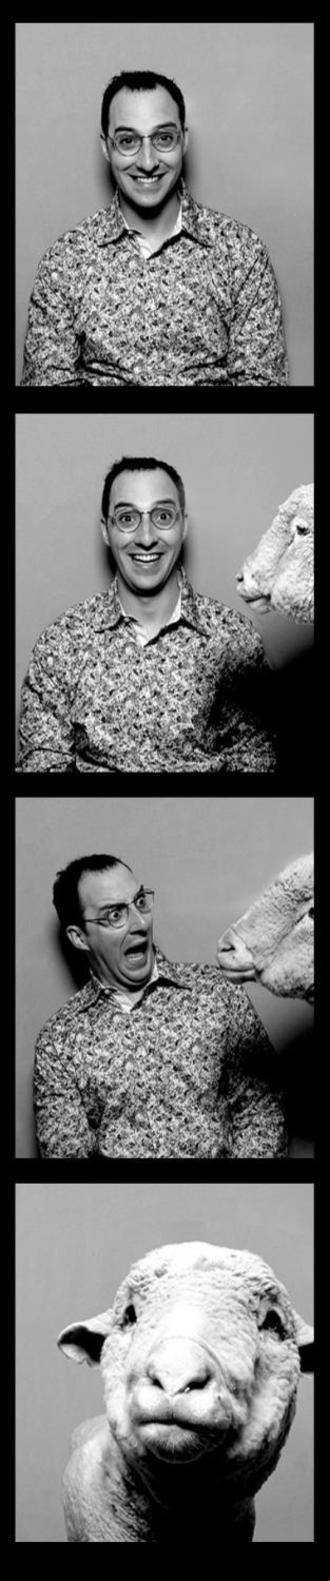 Buster's photobooth moment with a sheep. From Arrested Development.